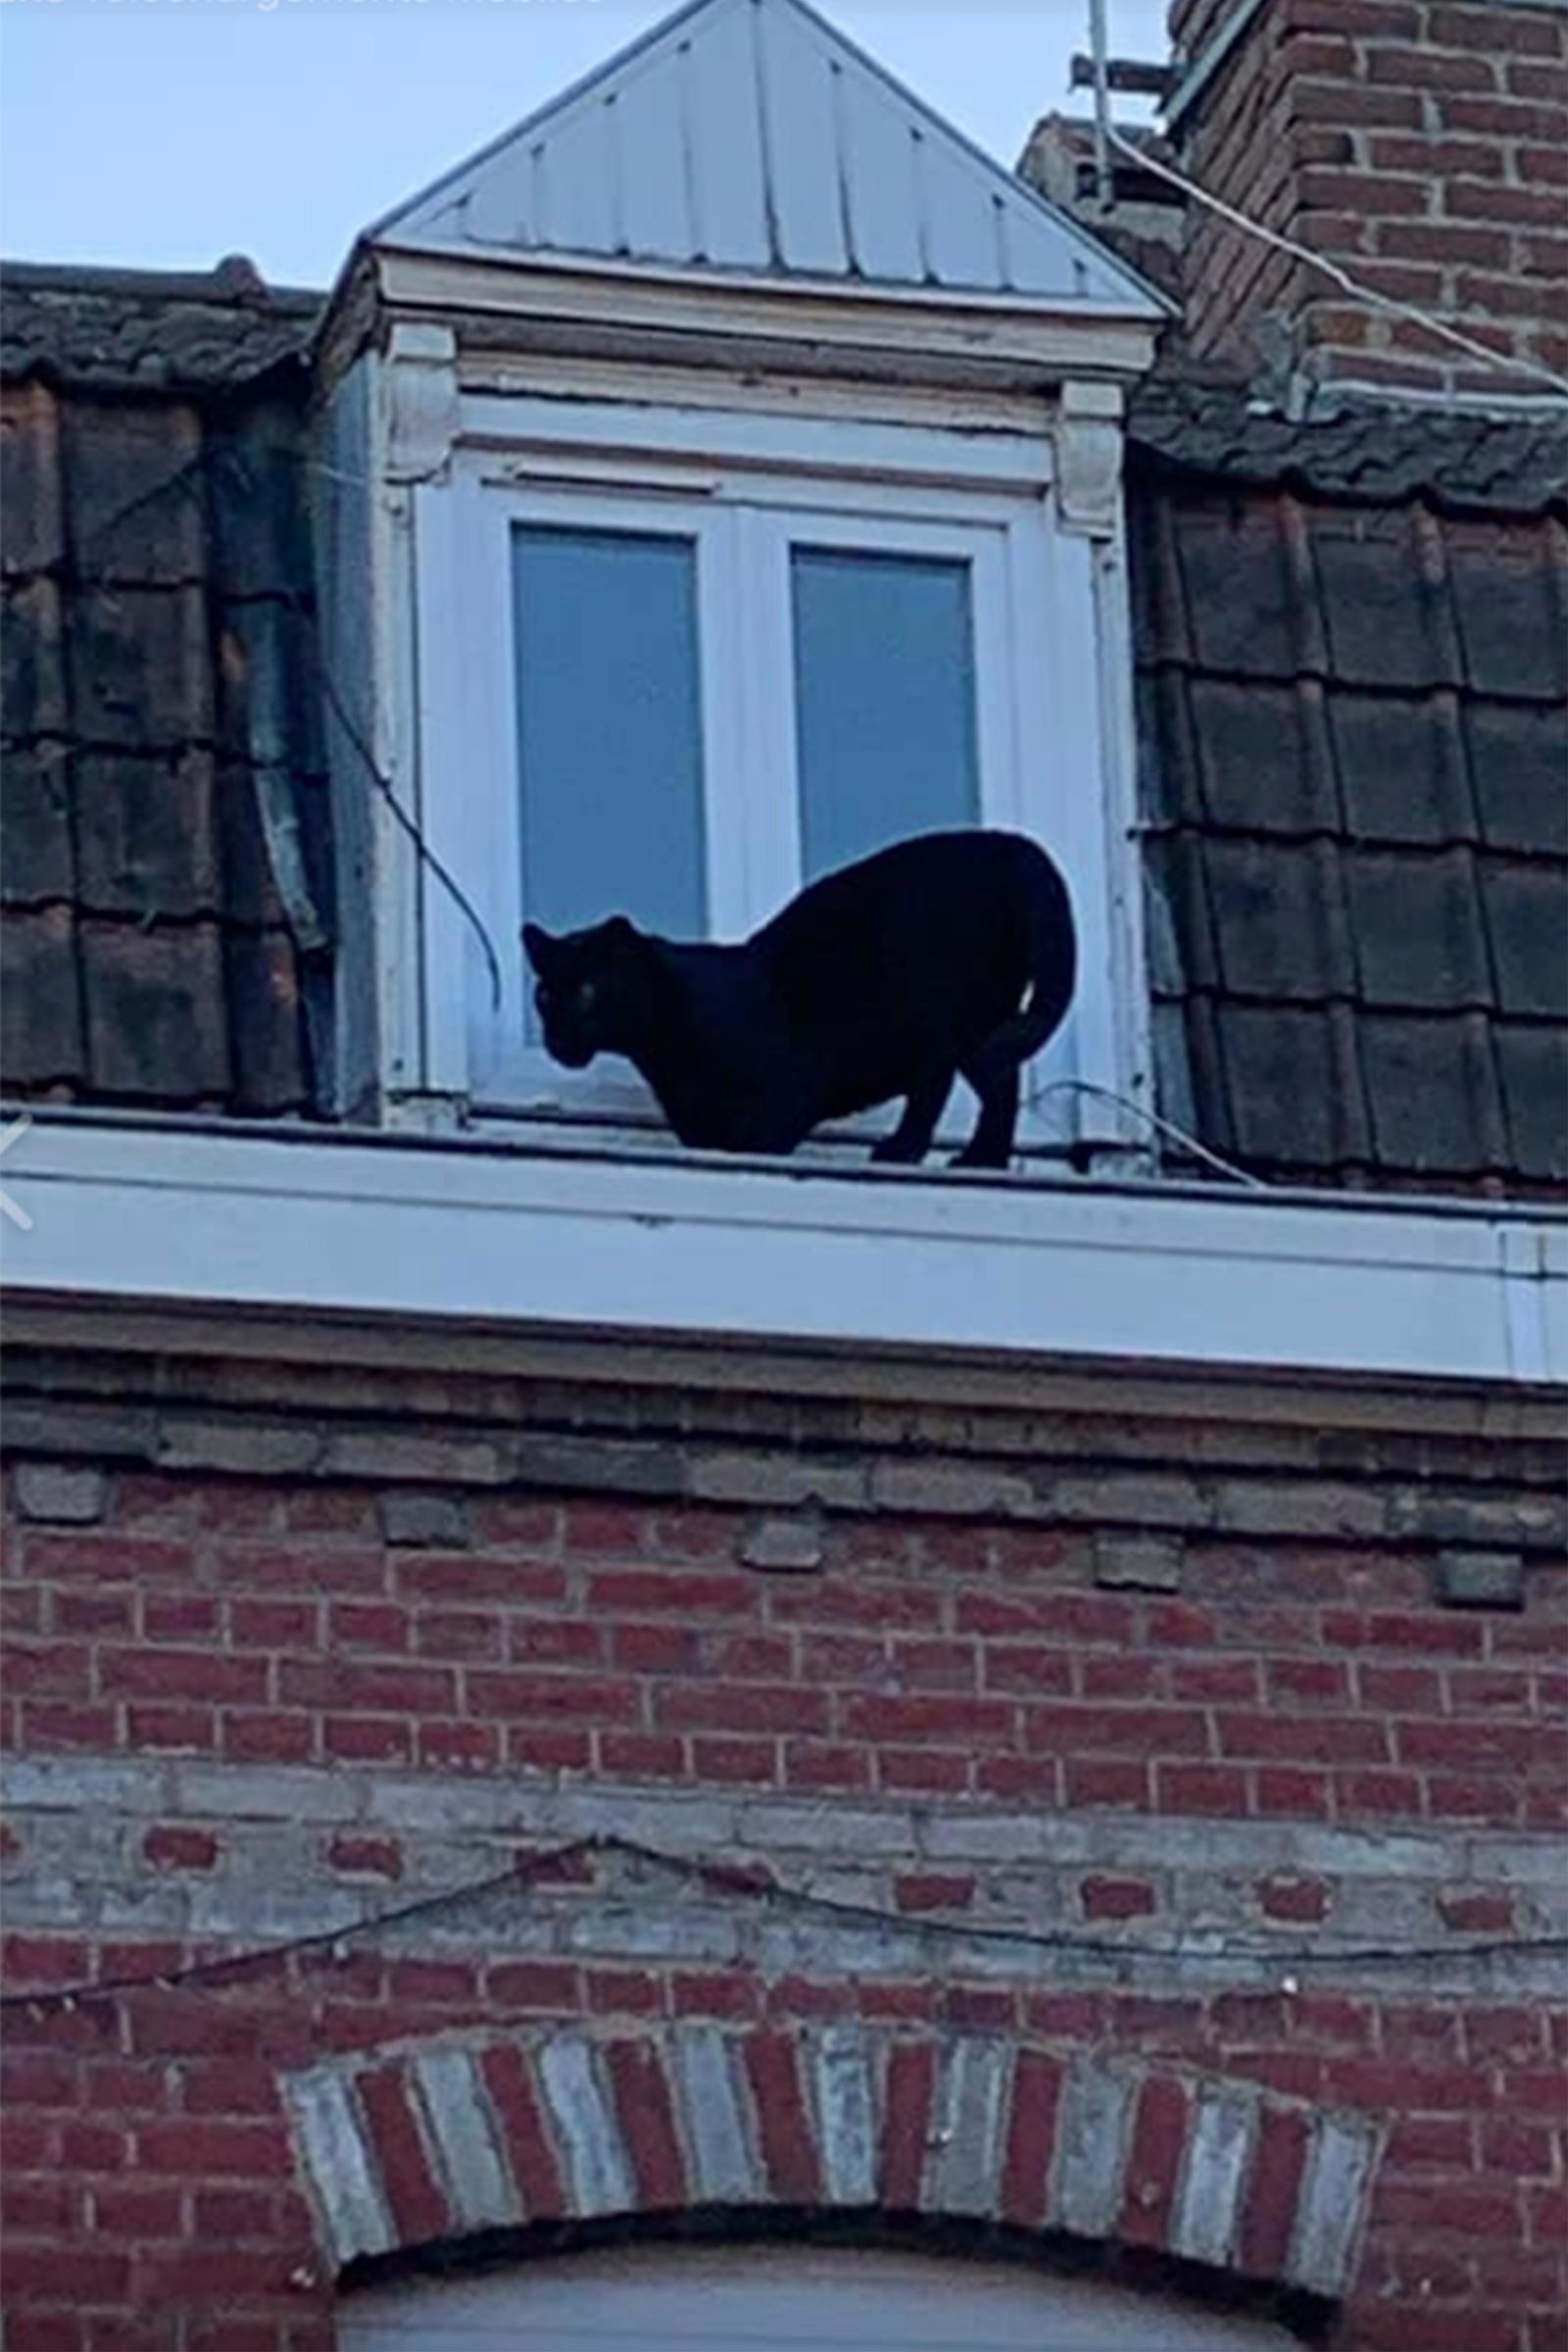 This provided provided by the Fire Brigade of Northern France shows a panther on the gutter of a building in Armentieres, northern France, Wednesday Sept.18, 2019. (Sapeurs-Pompiers du Nord via AP)